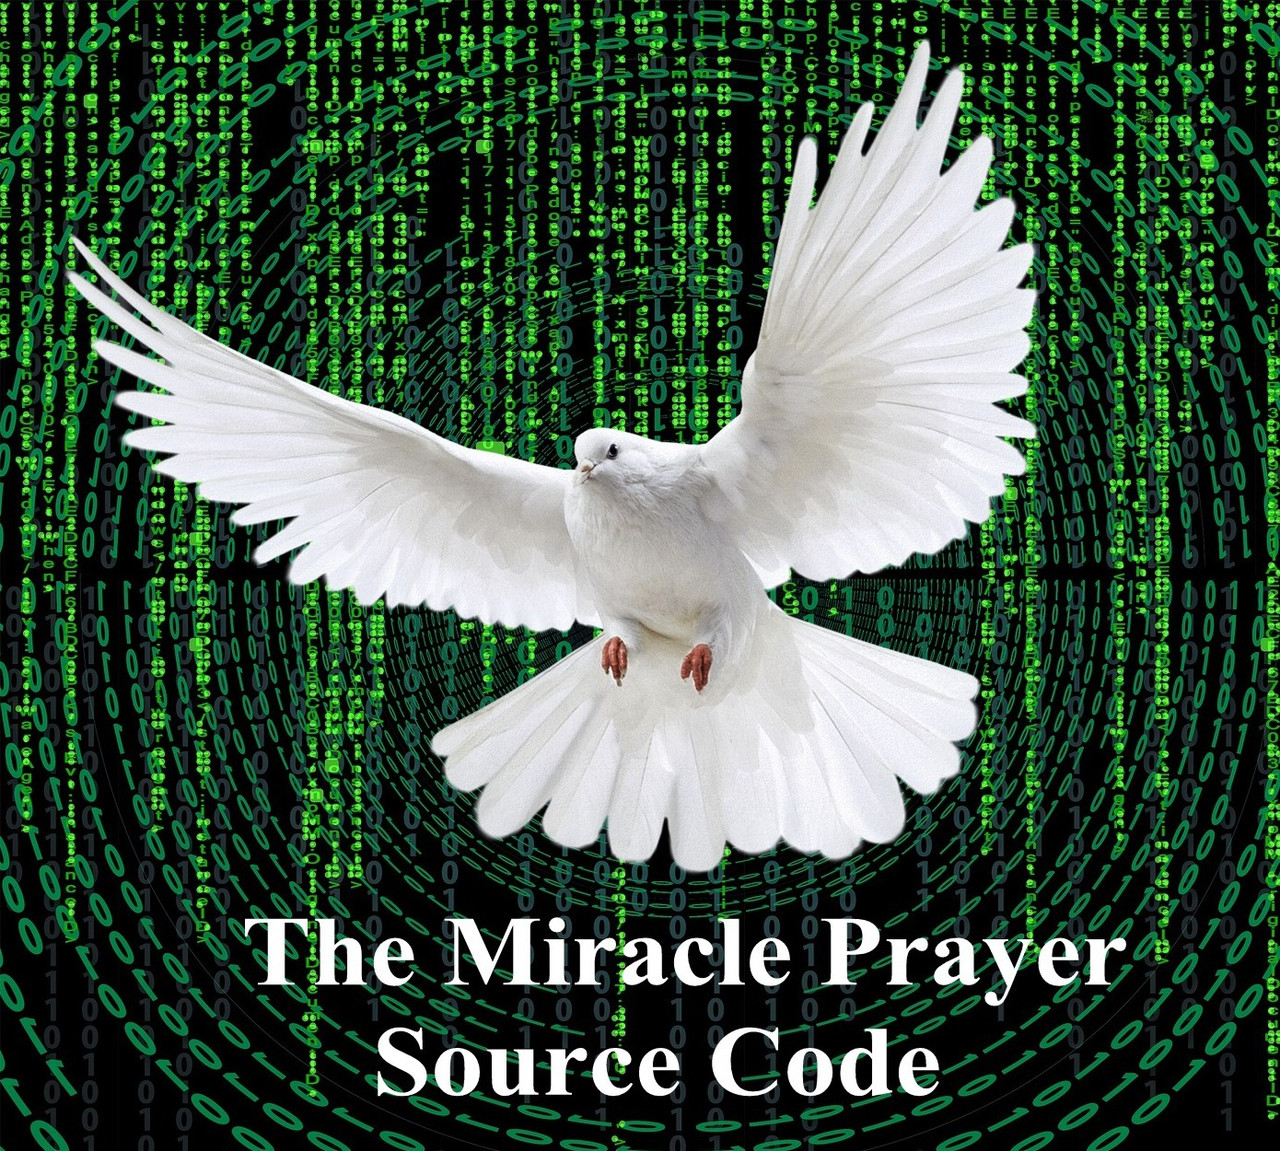 The Miracle Prayer Source Code